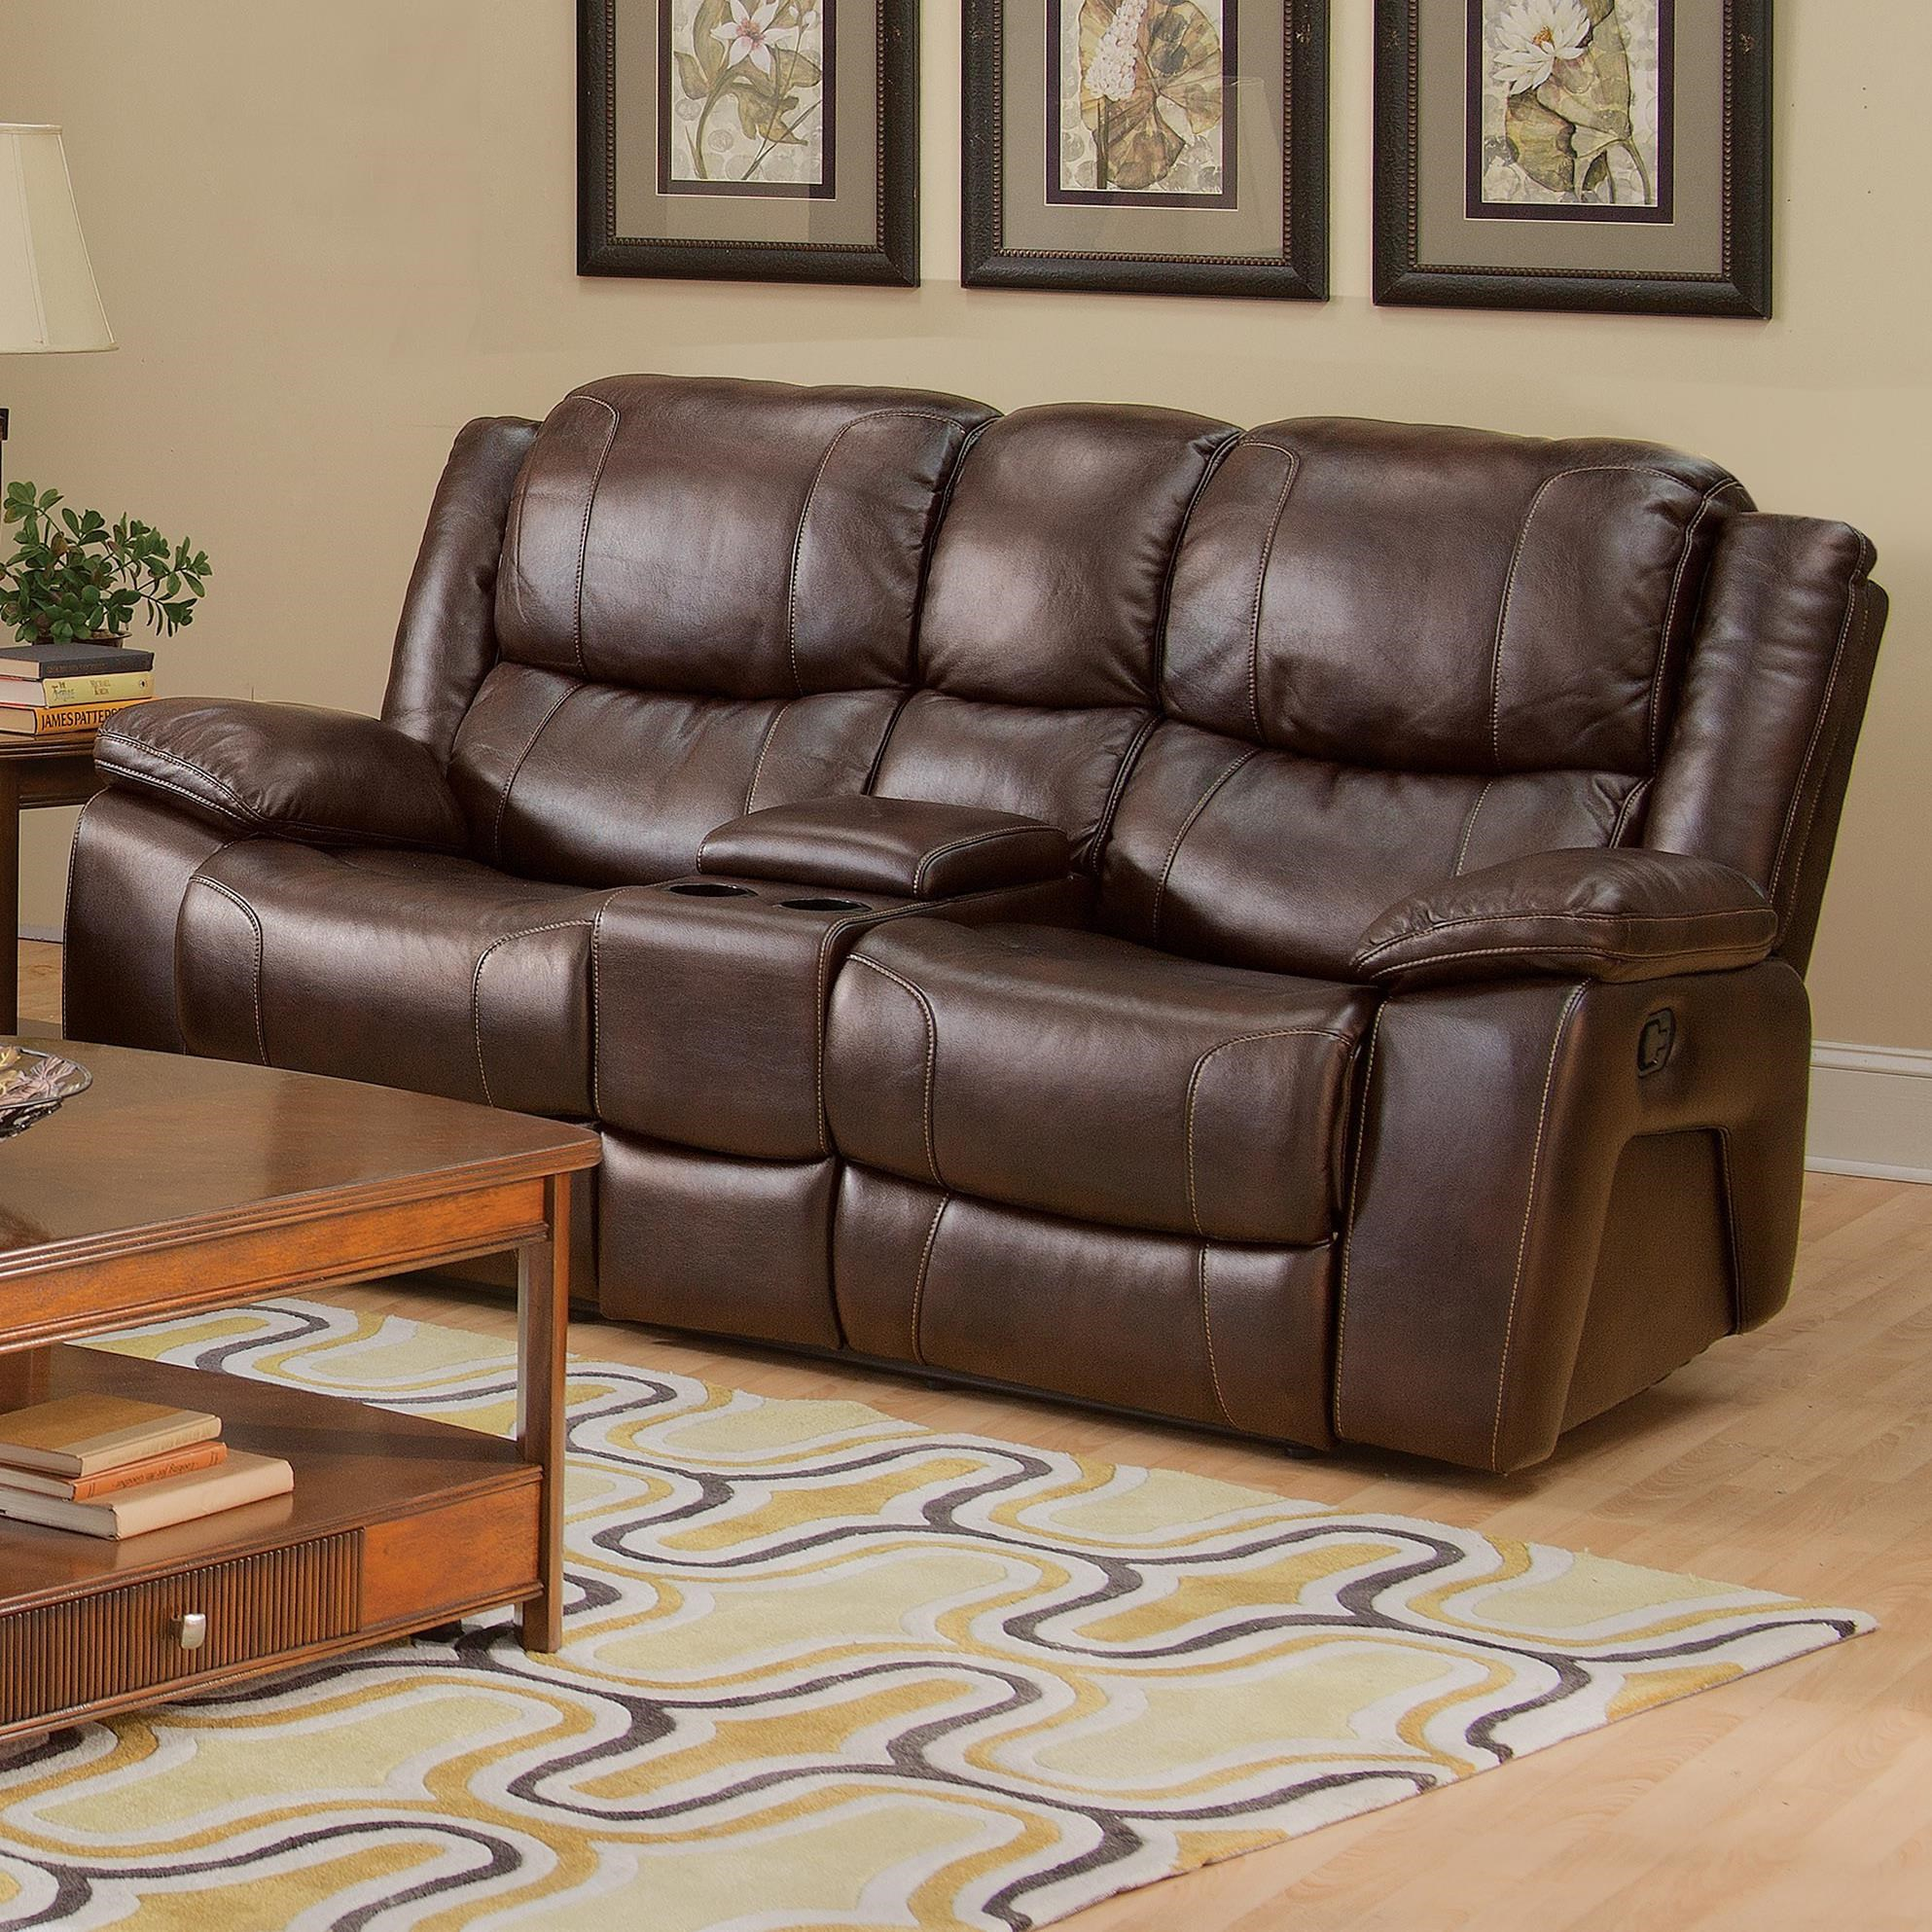 New Classic Brooke Casual Dual Recliner Console Loveseat With Cup Holders  And Storage Drawer